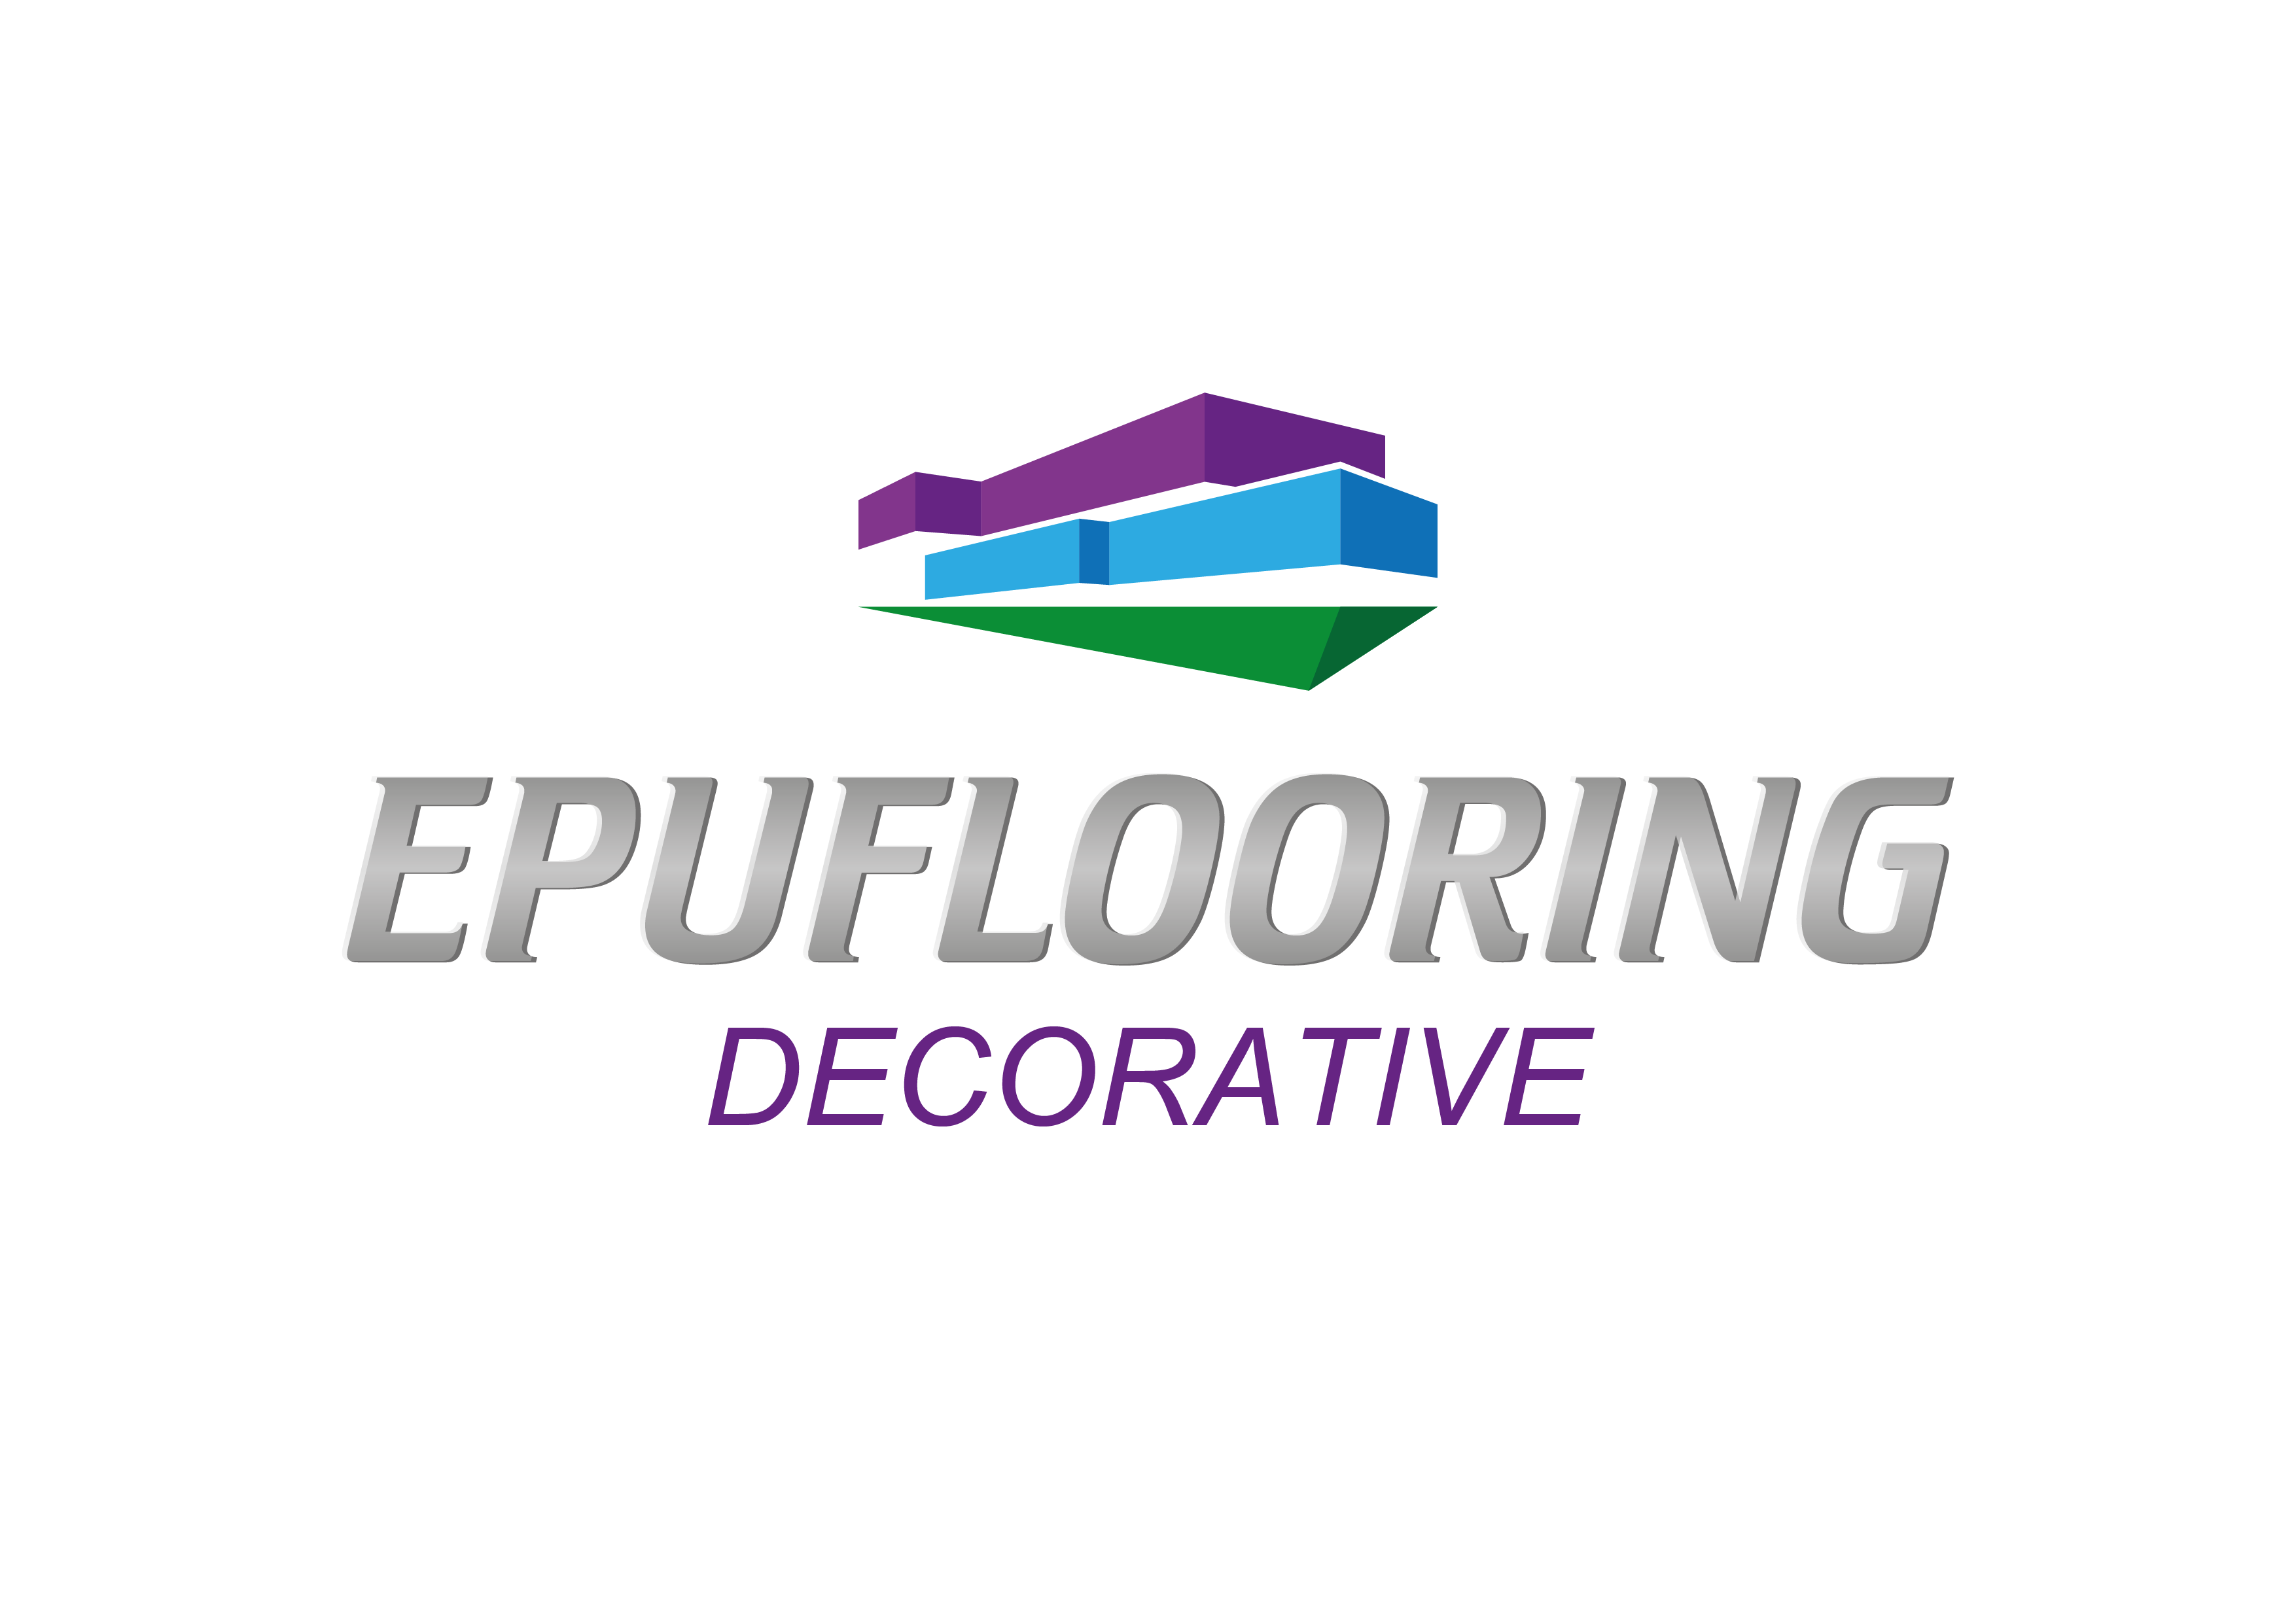 EPUFLOORING GROUP LOGO decorative